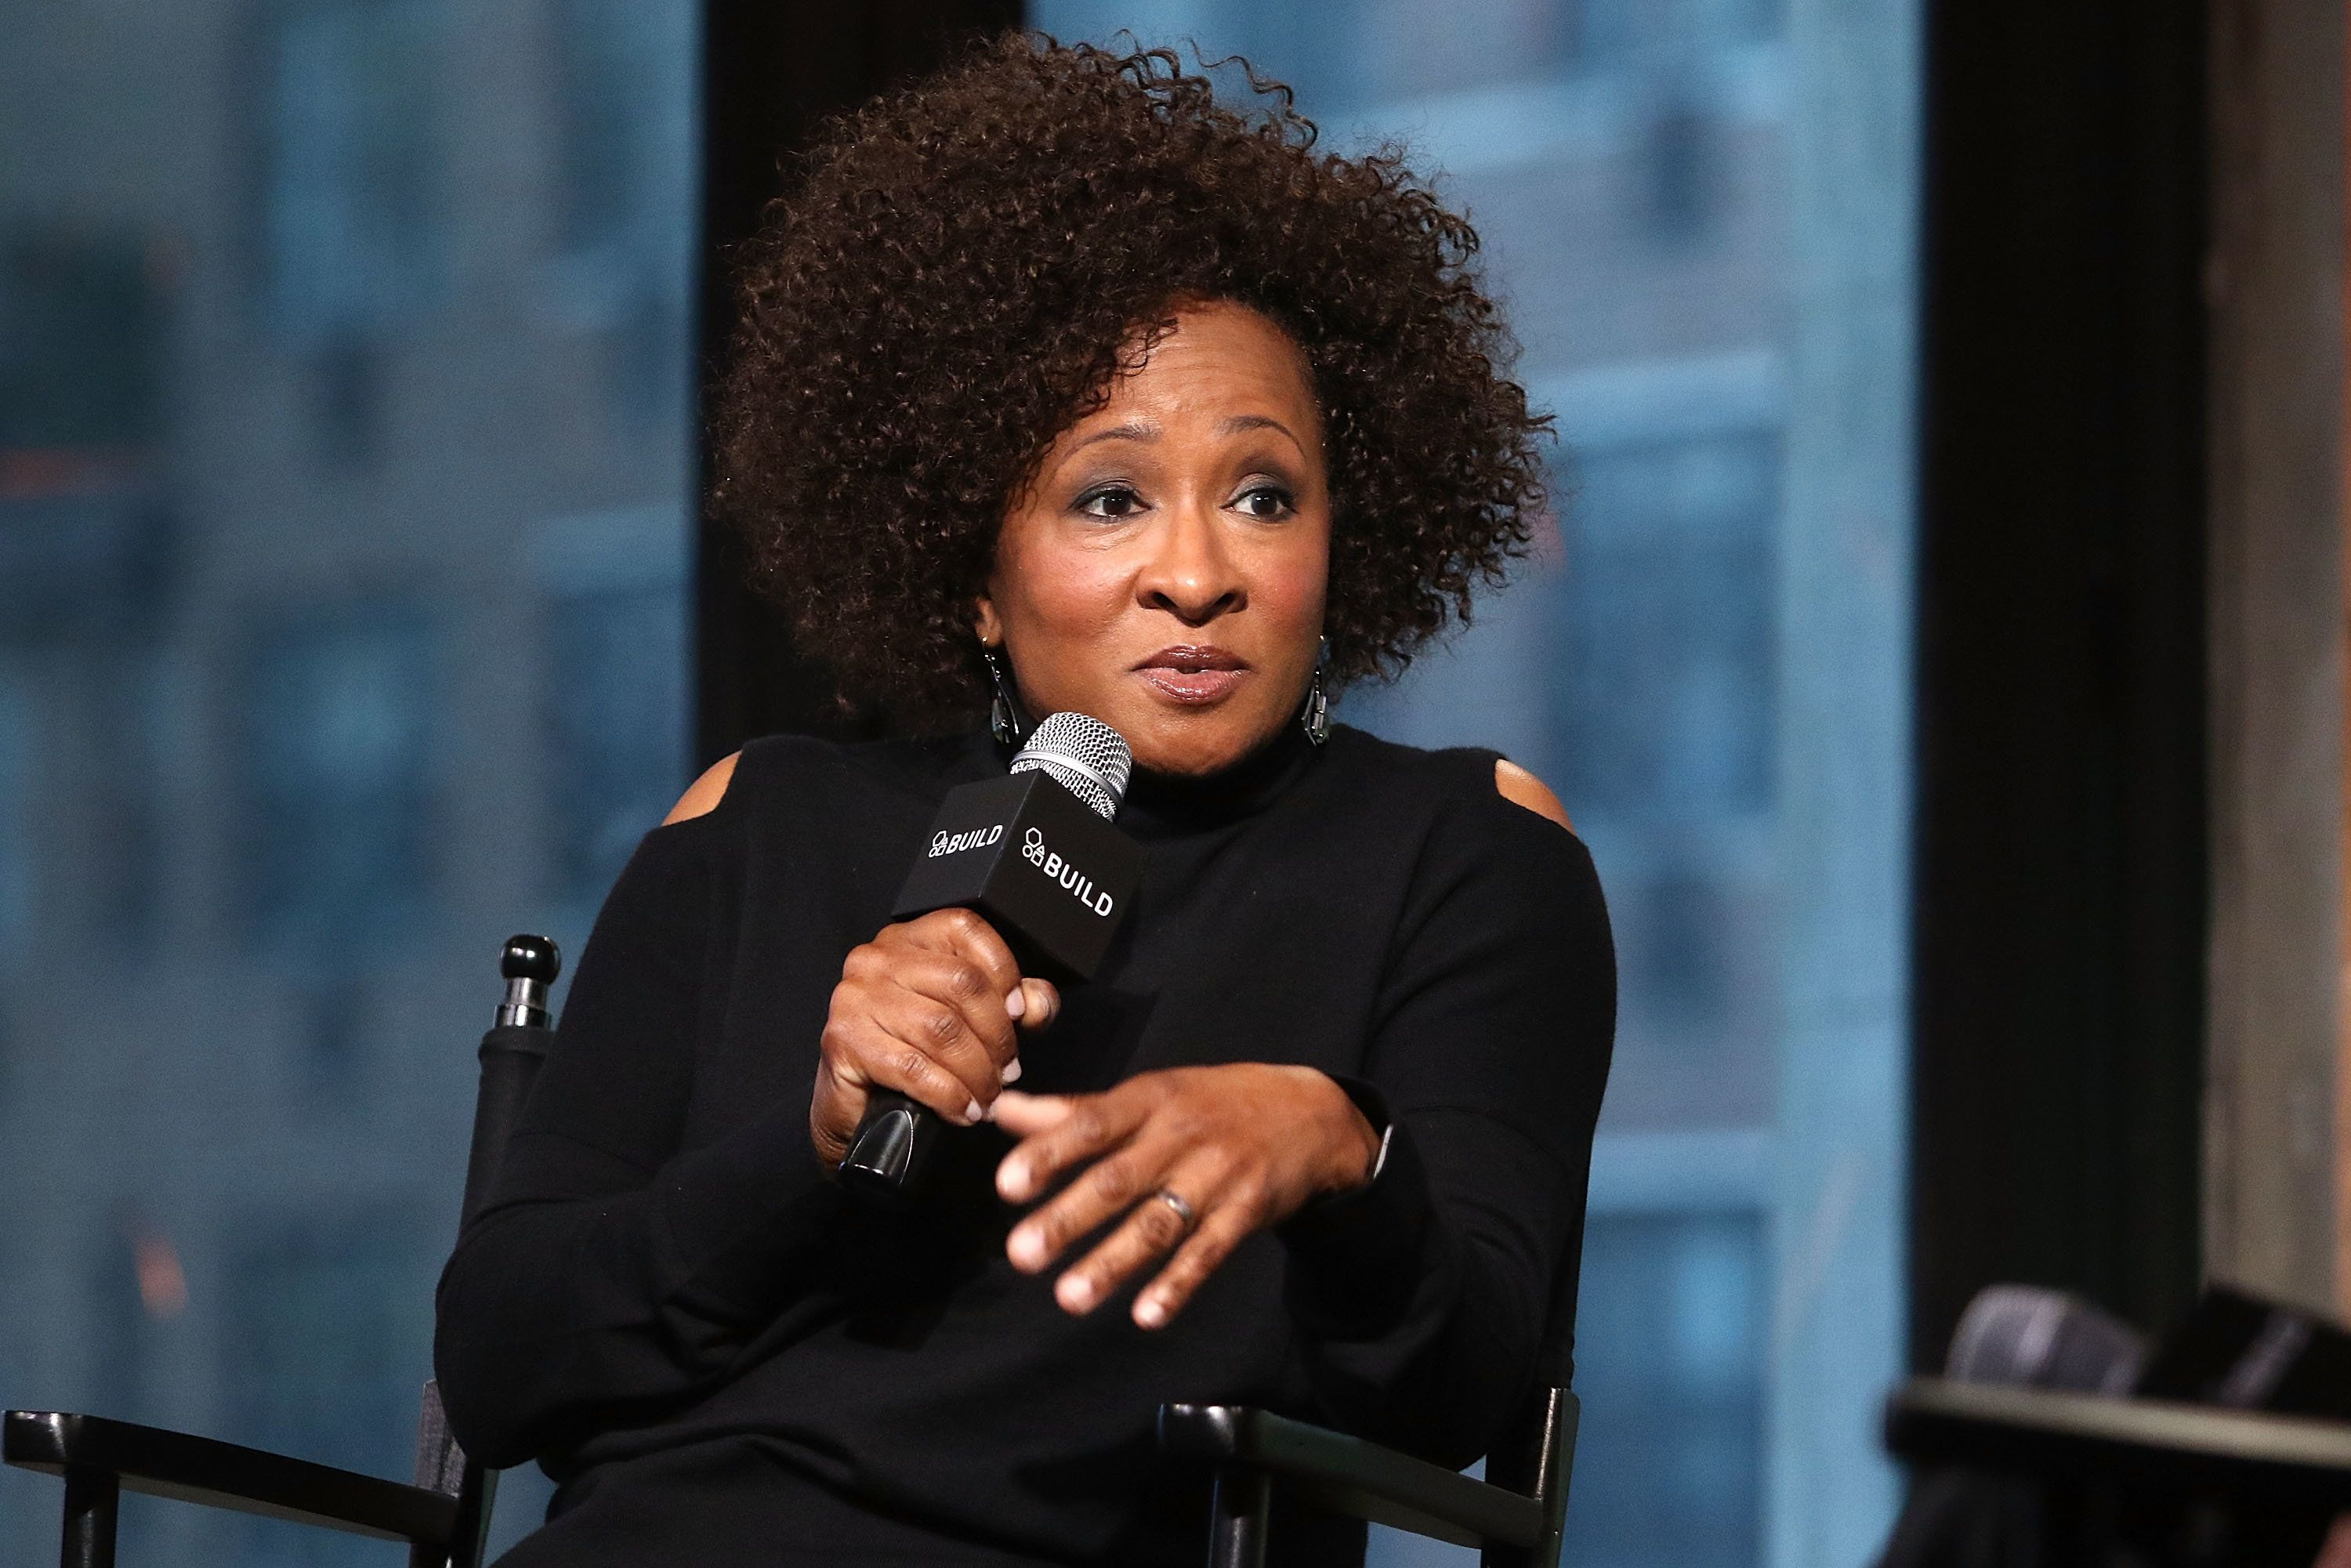 NEW YORK, NY - OCTOBER 19:  Wanda Sykes attends The Build Series to discuss her new project 'What Happened...Ms. Sykes' at AOL HQ on October 19, 2016 in New York City.  (Photo by Laura Cavanaugh/WireImage)